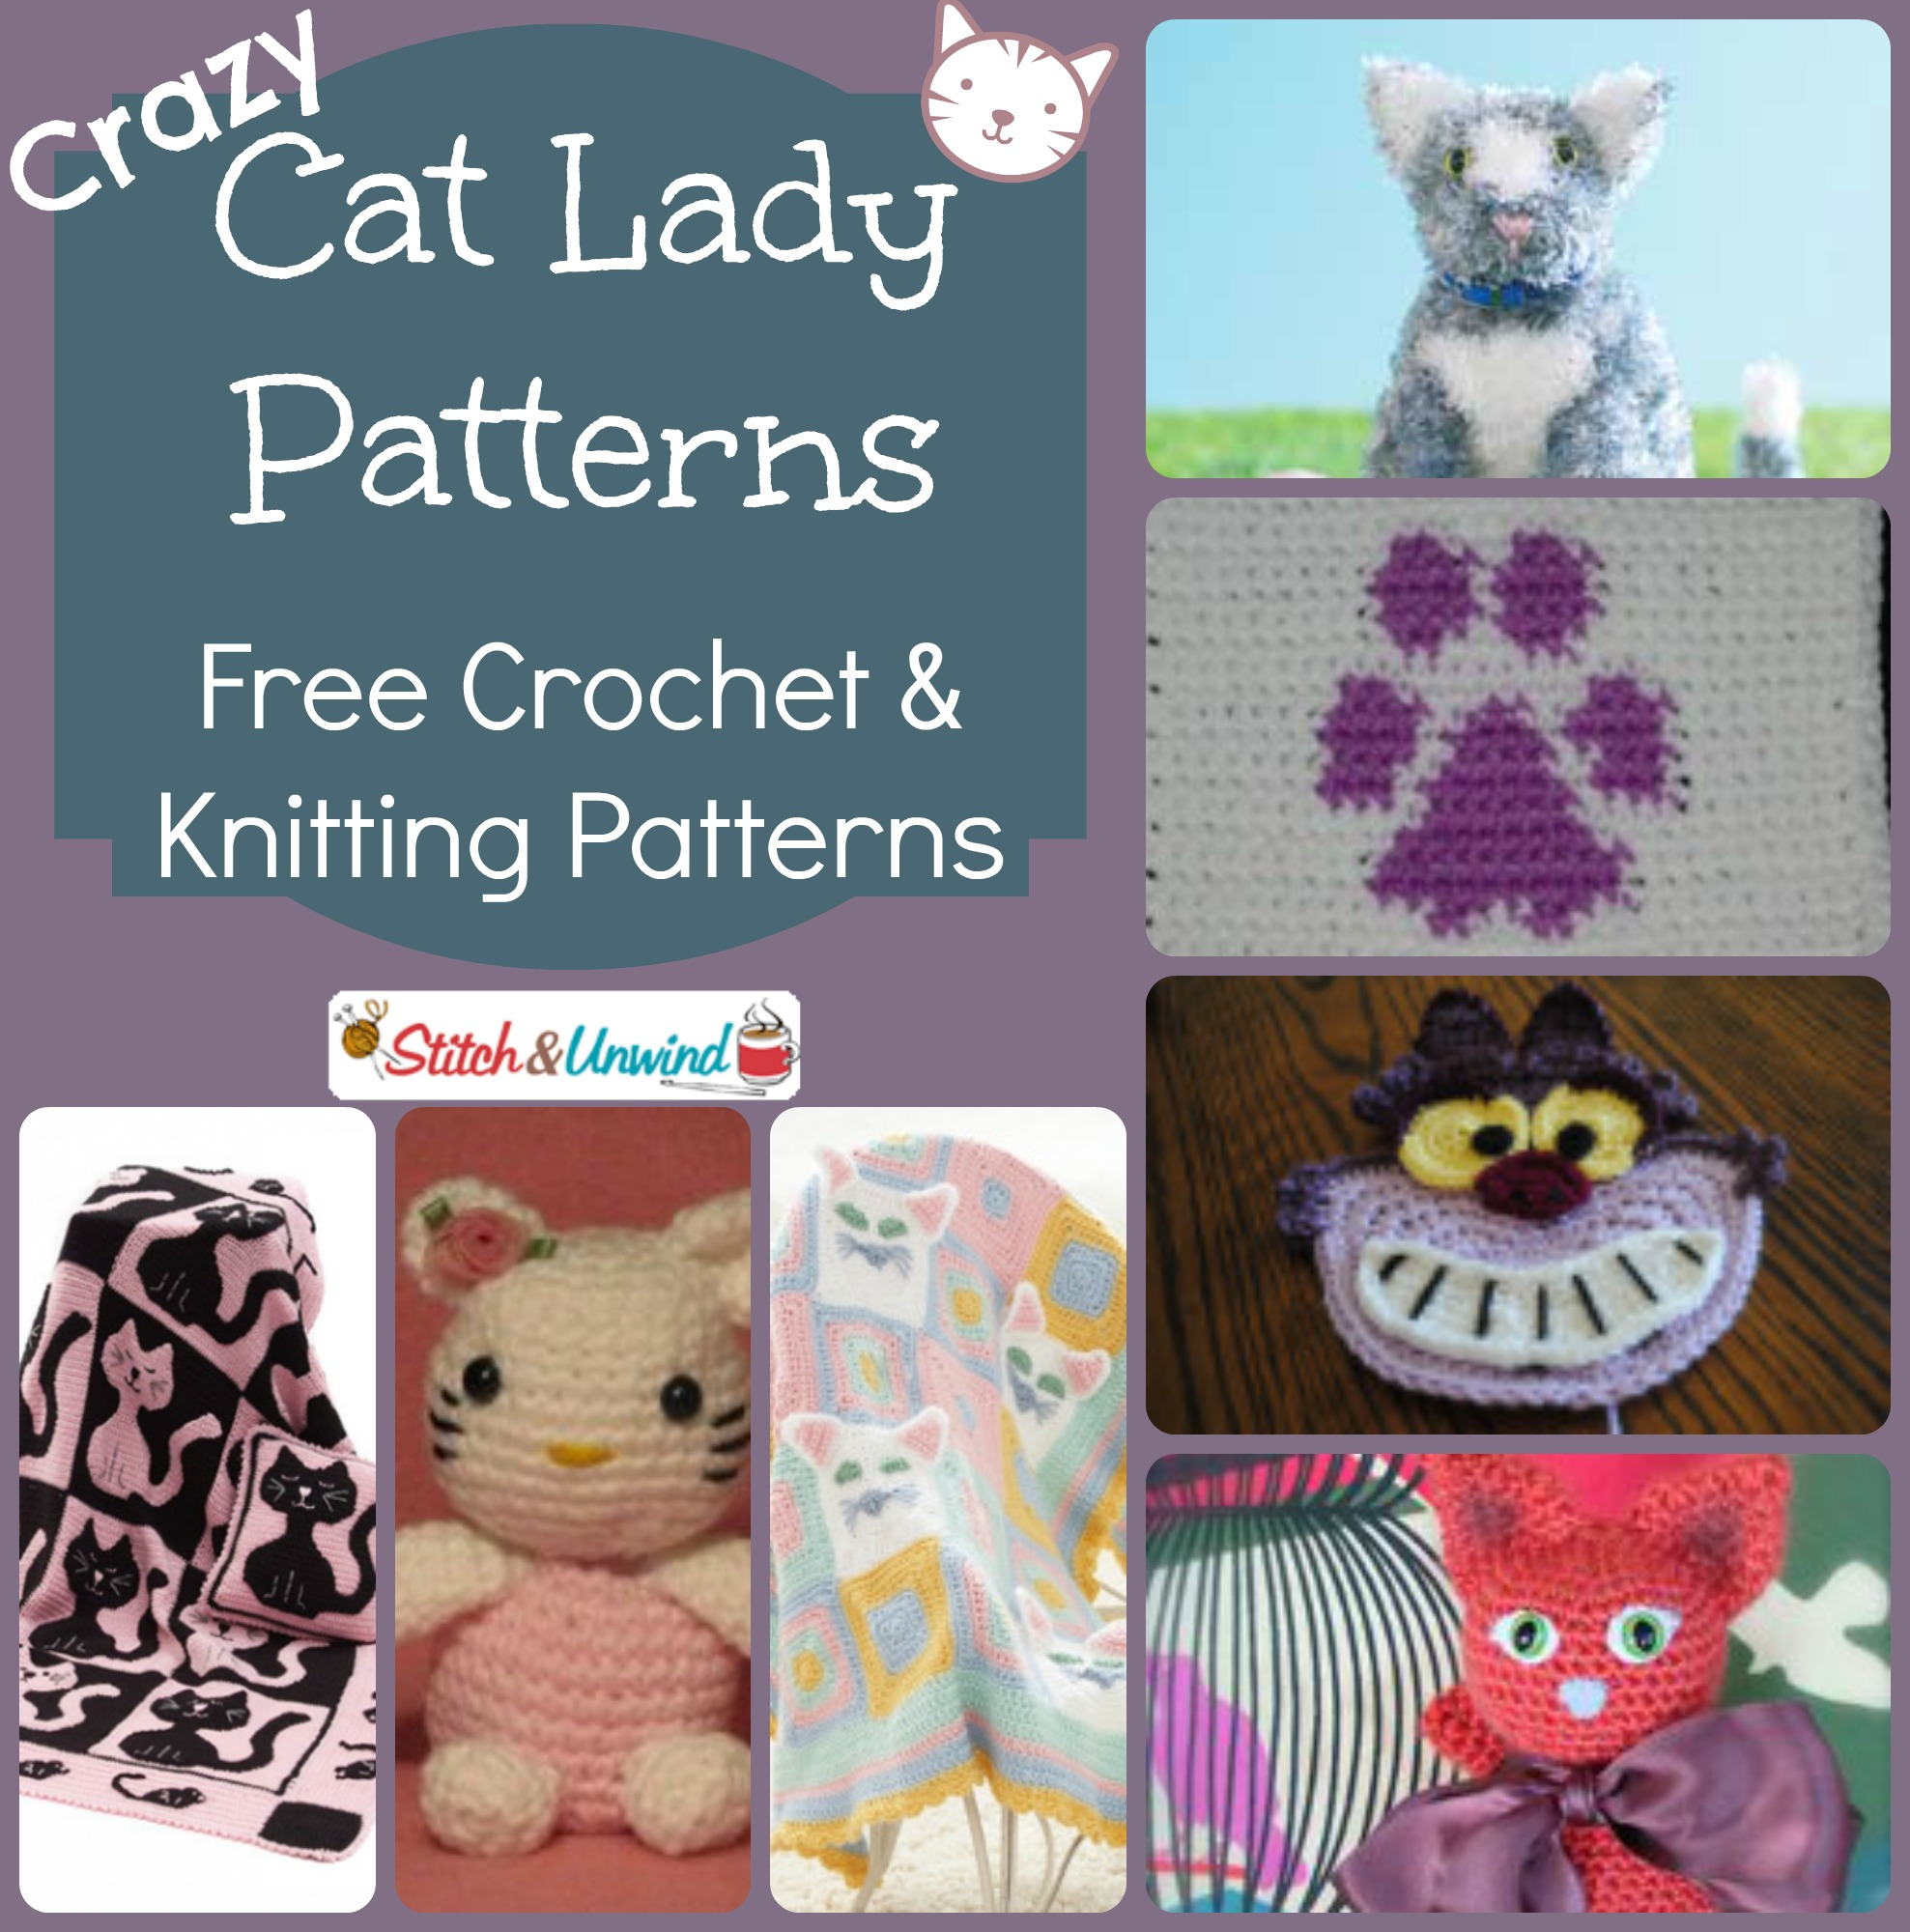 Crazy Knitting Patterns : Crazy Cat Lady Patterns: Free Crochet & Knitting Patterns - Stitch and Un...